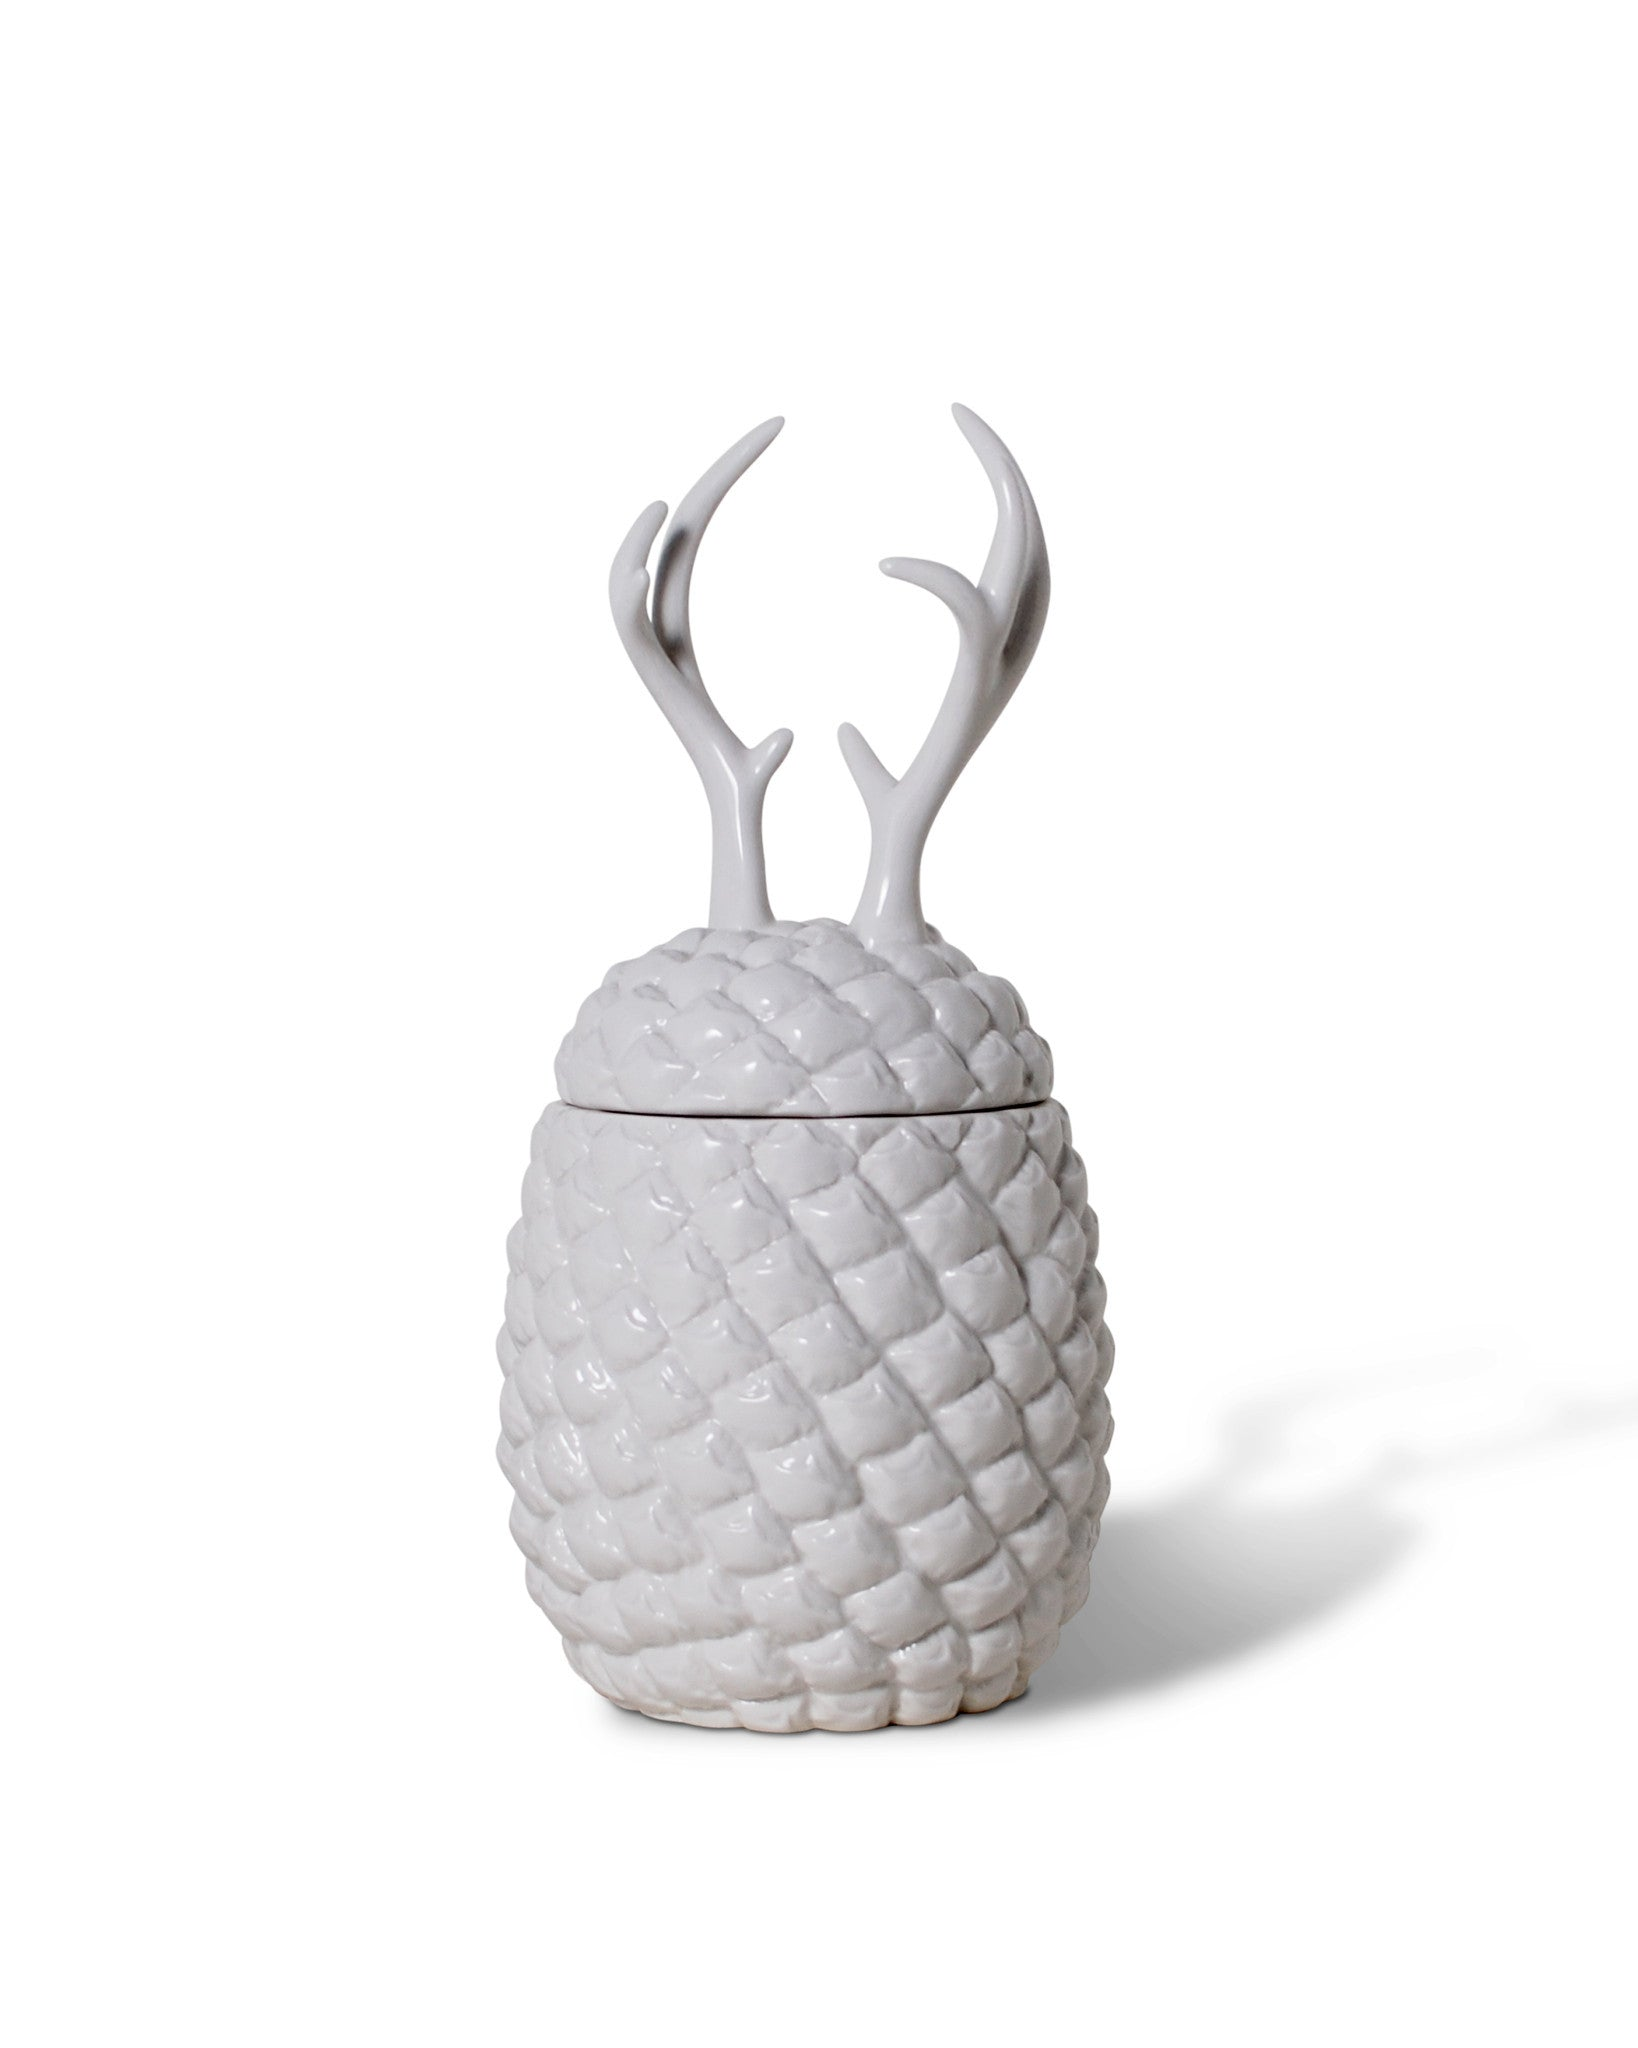 pineapple antler ceramic kitchen canisters hottt com pineapple antler container pineapple antler container pineapple antler ceramic kitchen canisters